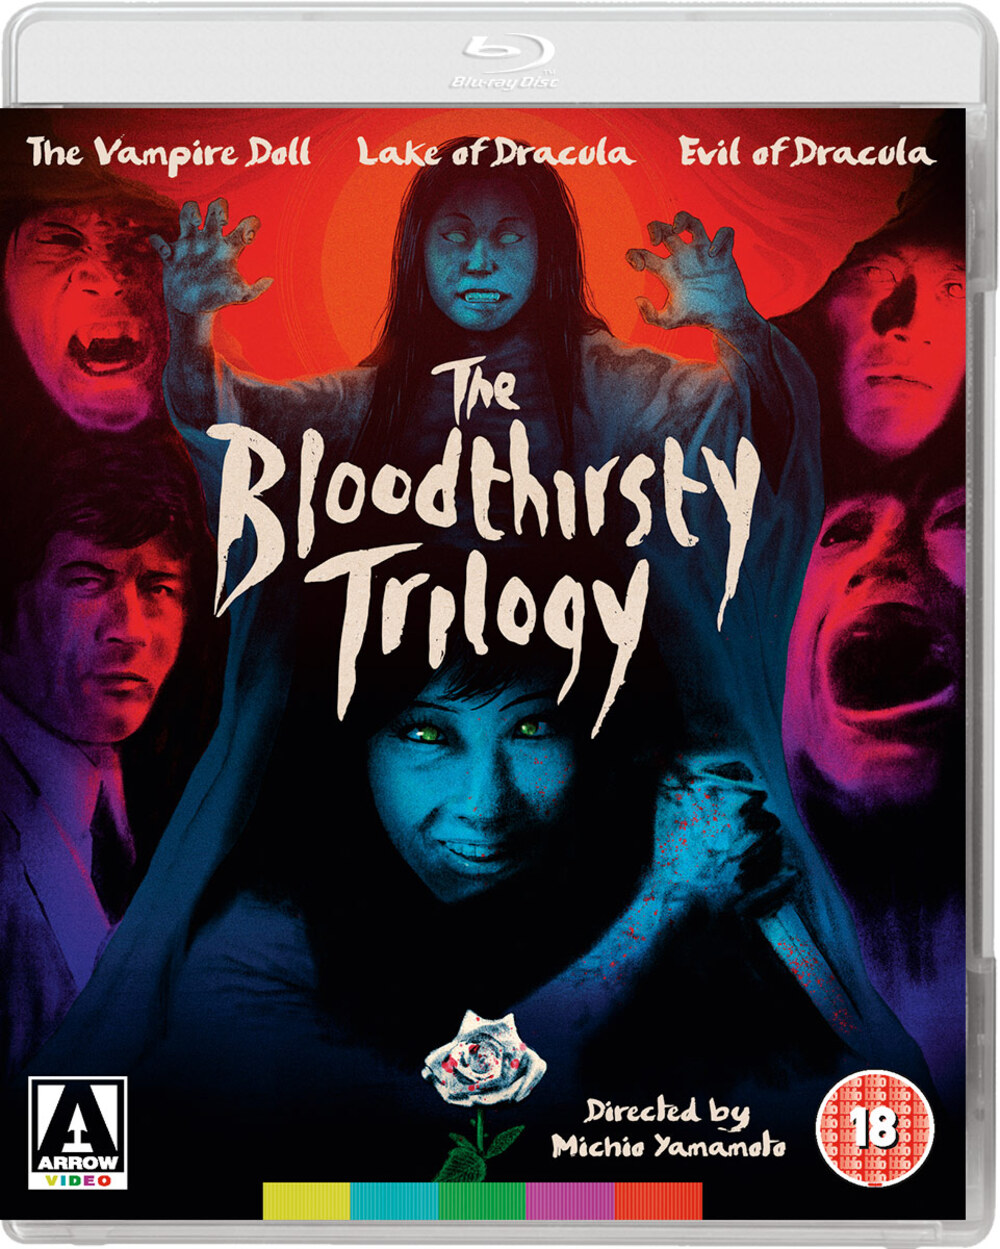 The Bloodthirsty Trilogy (1970 - 1974)